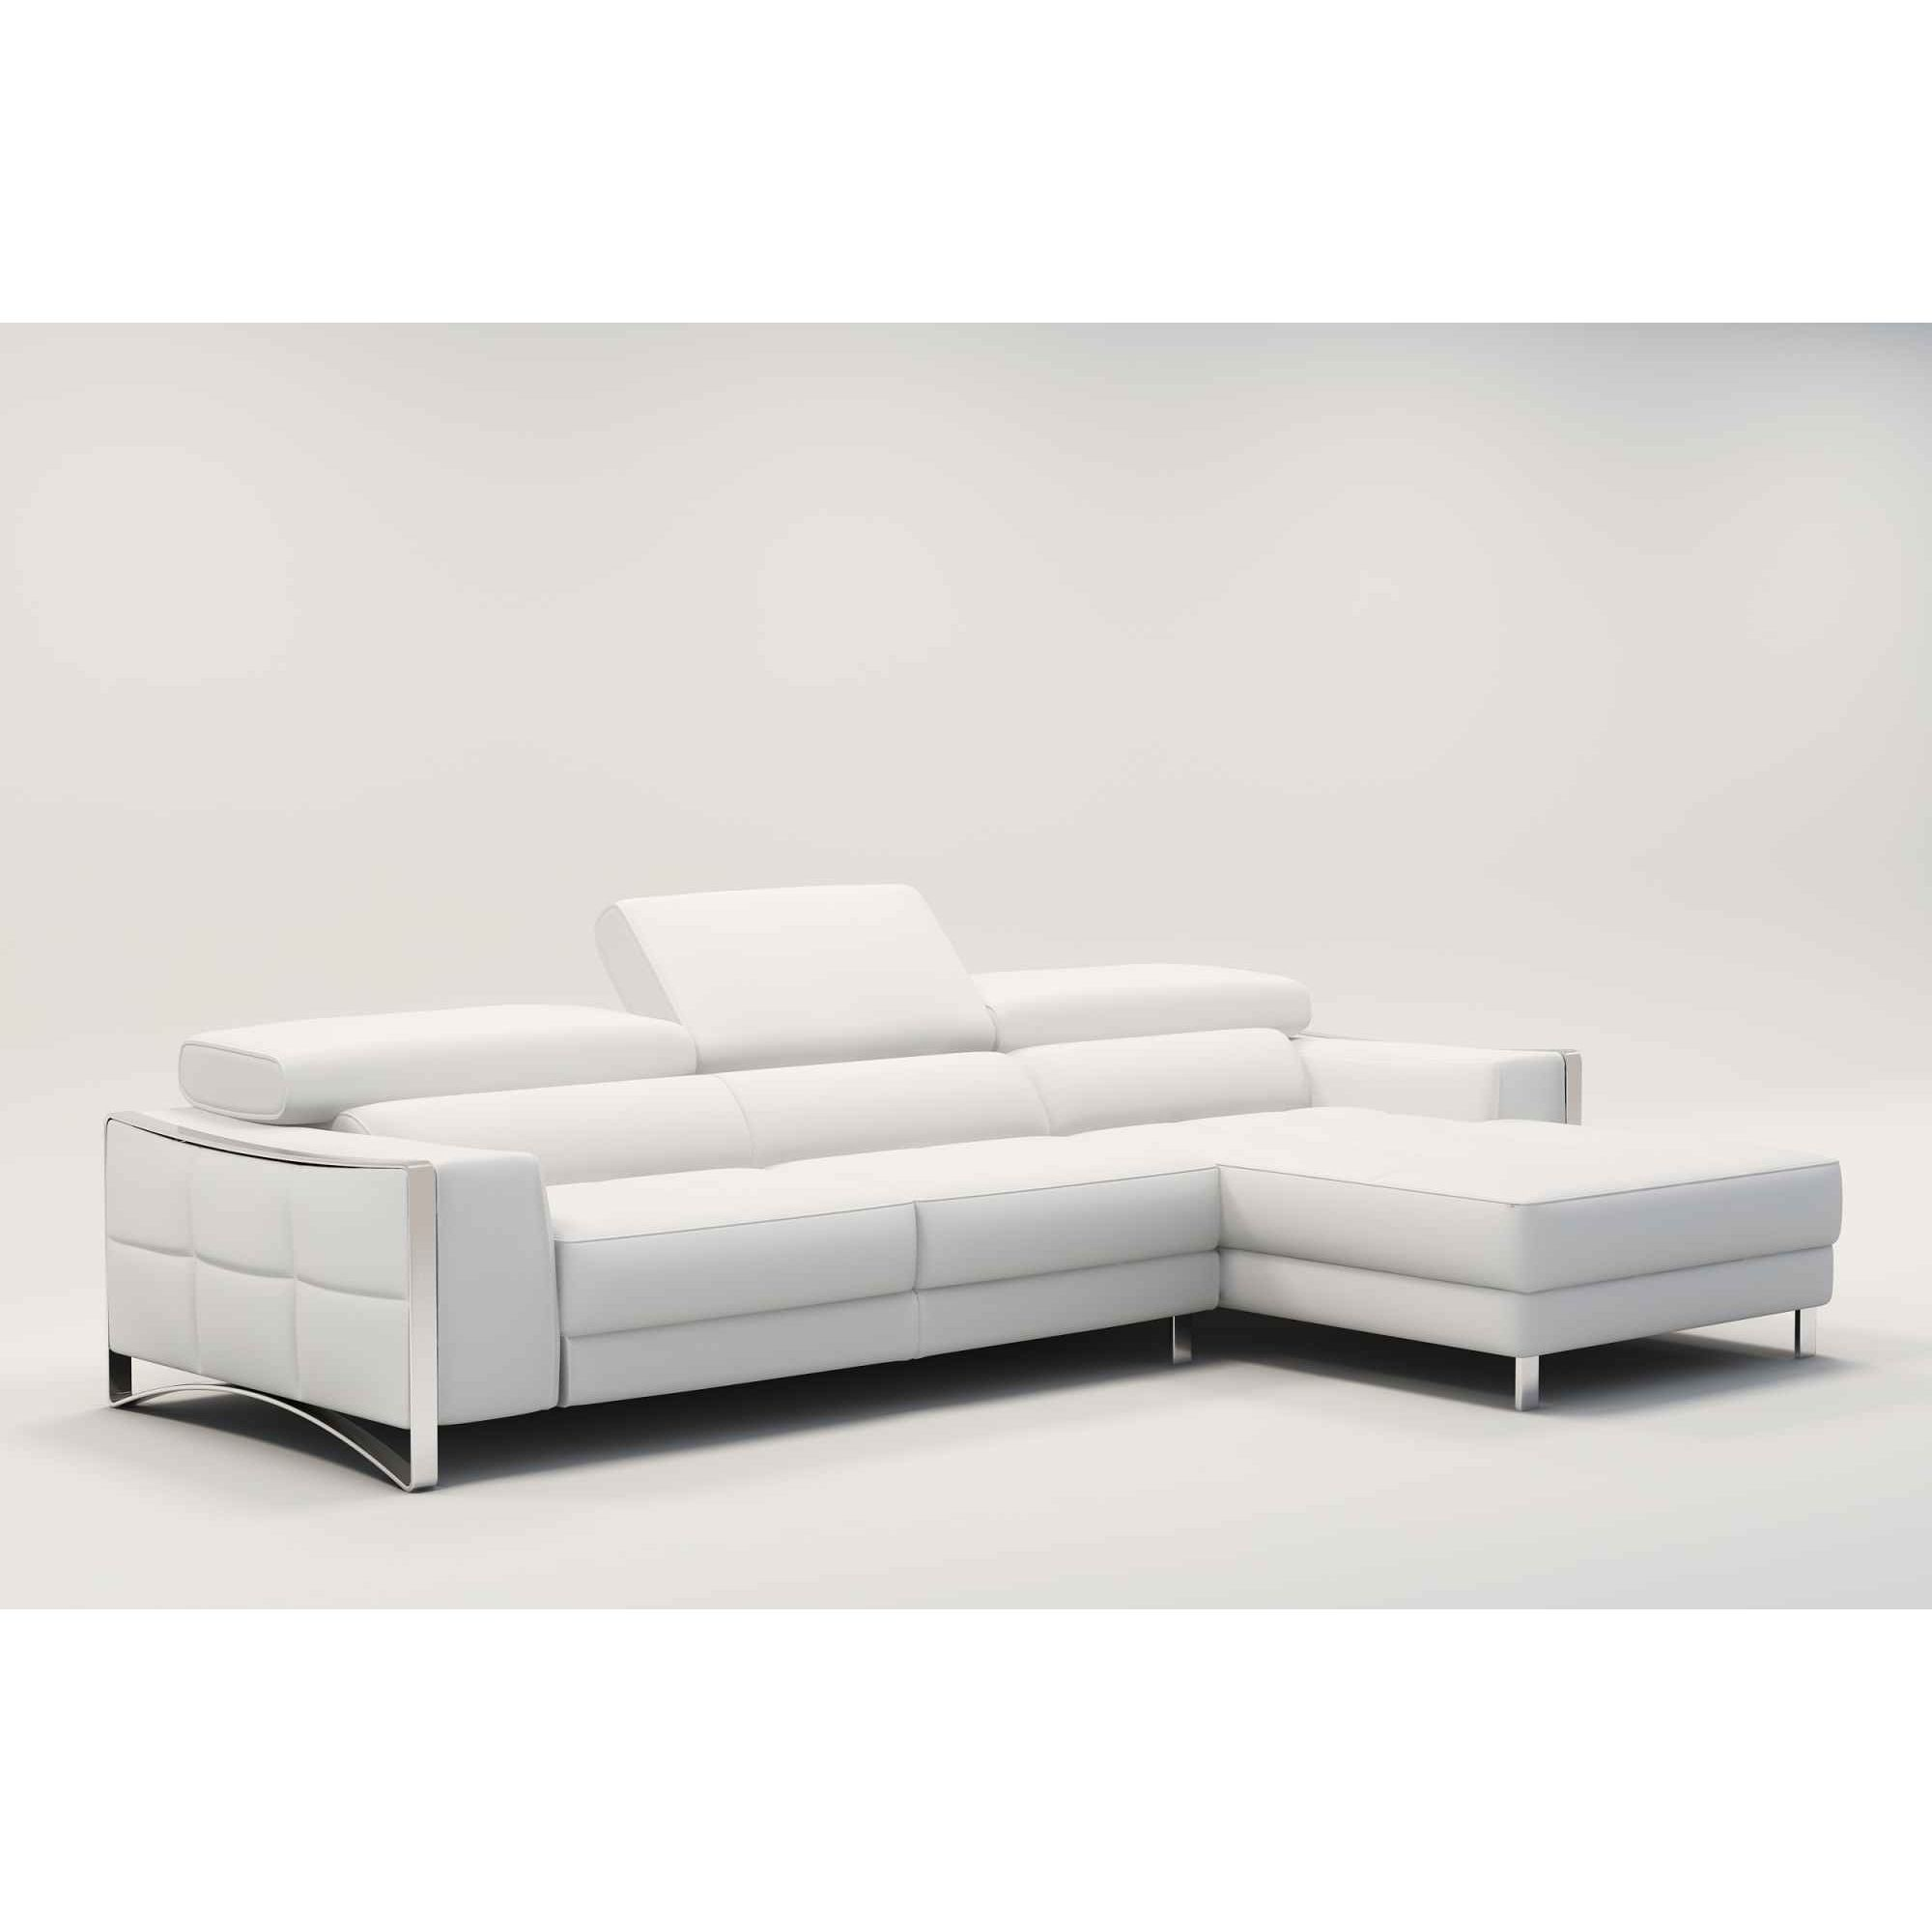 Canapé D Angle Cuir Blanc Design Deco In Paris Canape D Angle Design En Cuir Blanc Sheyla